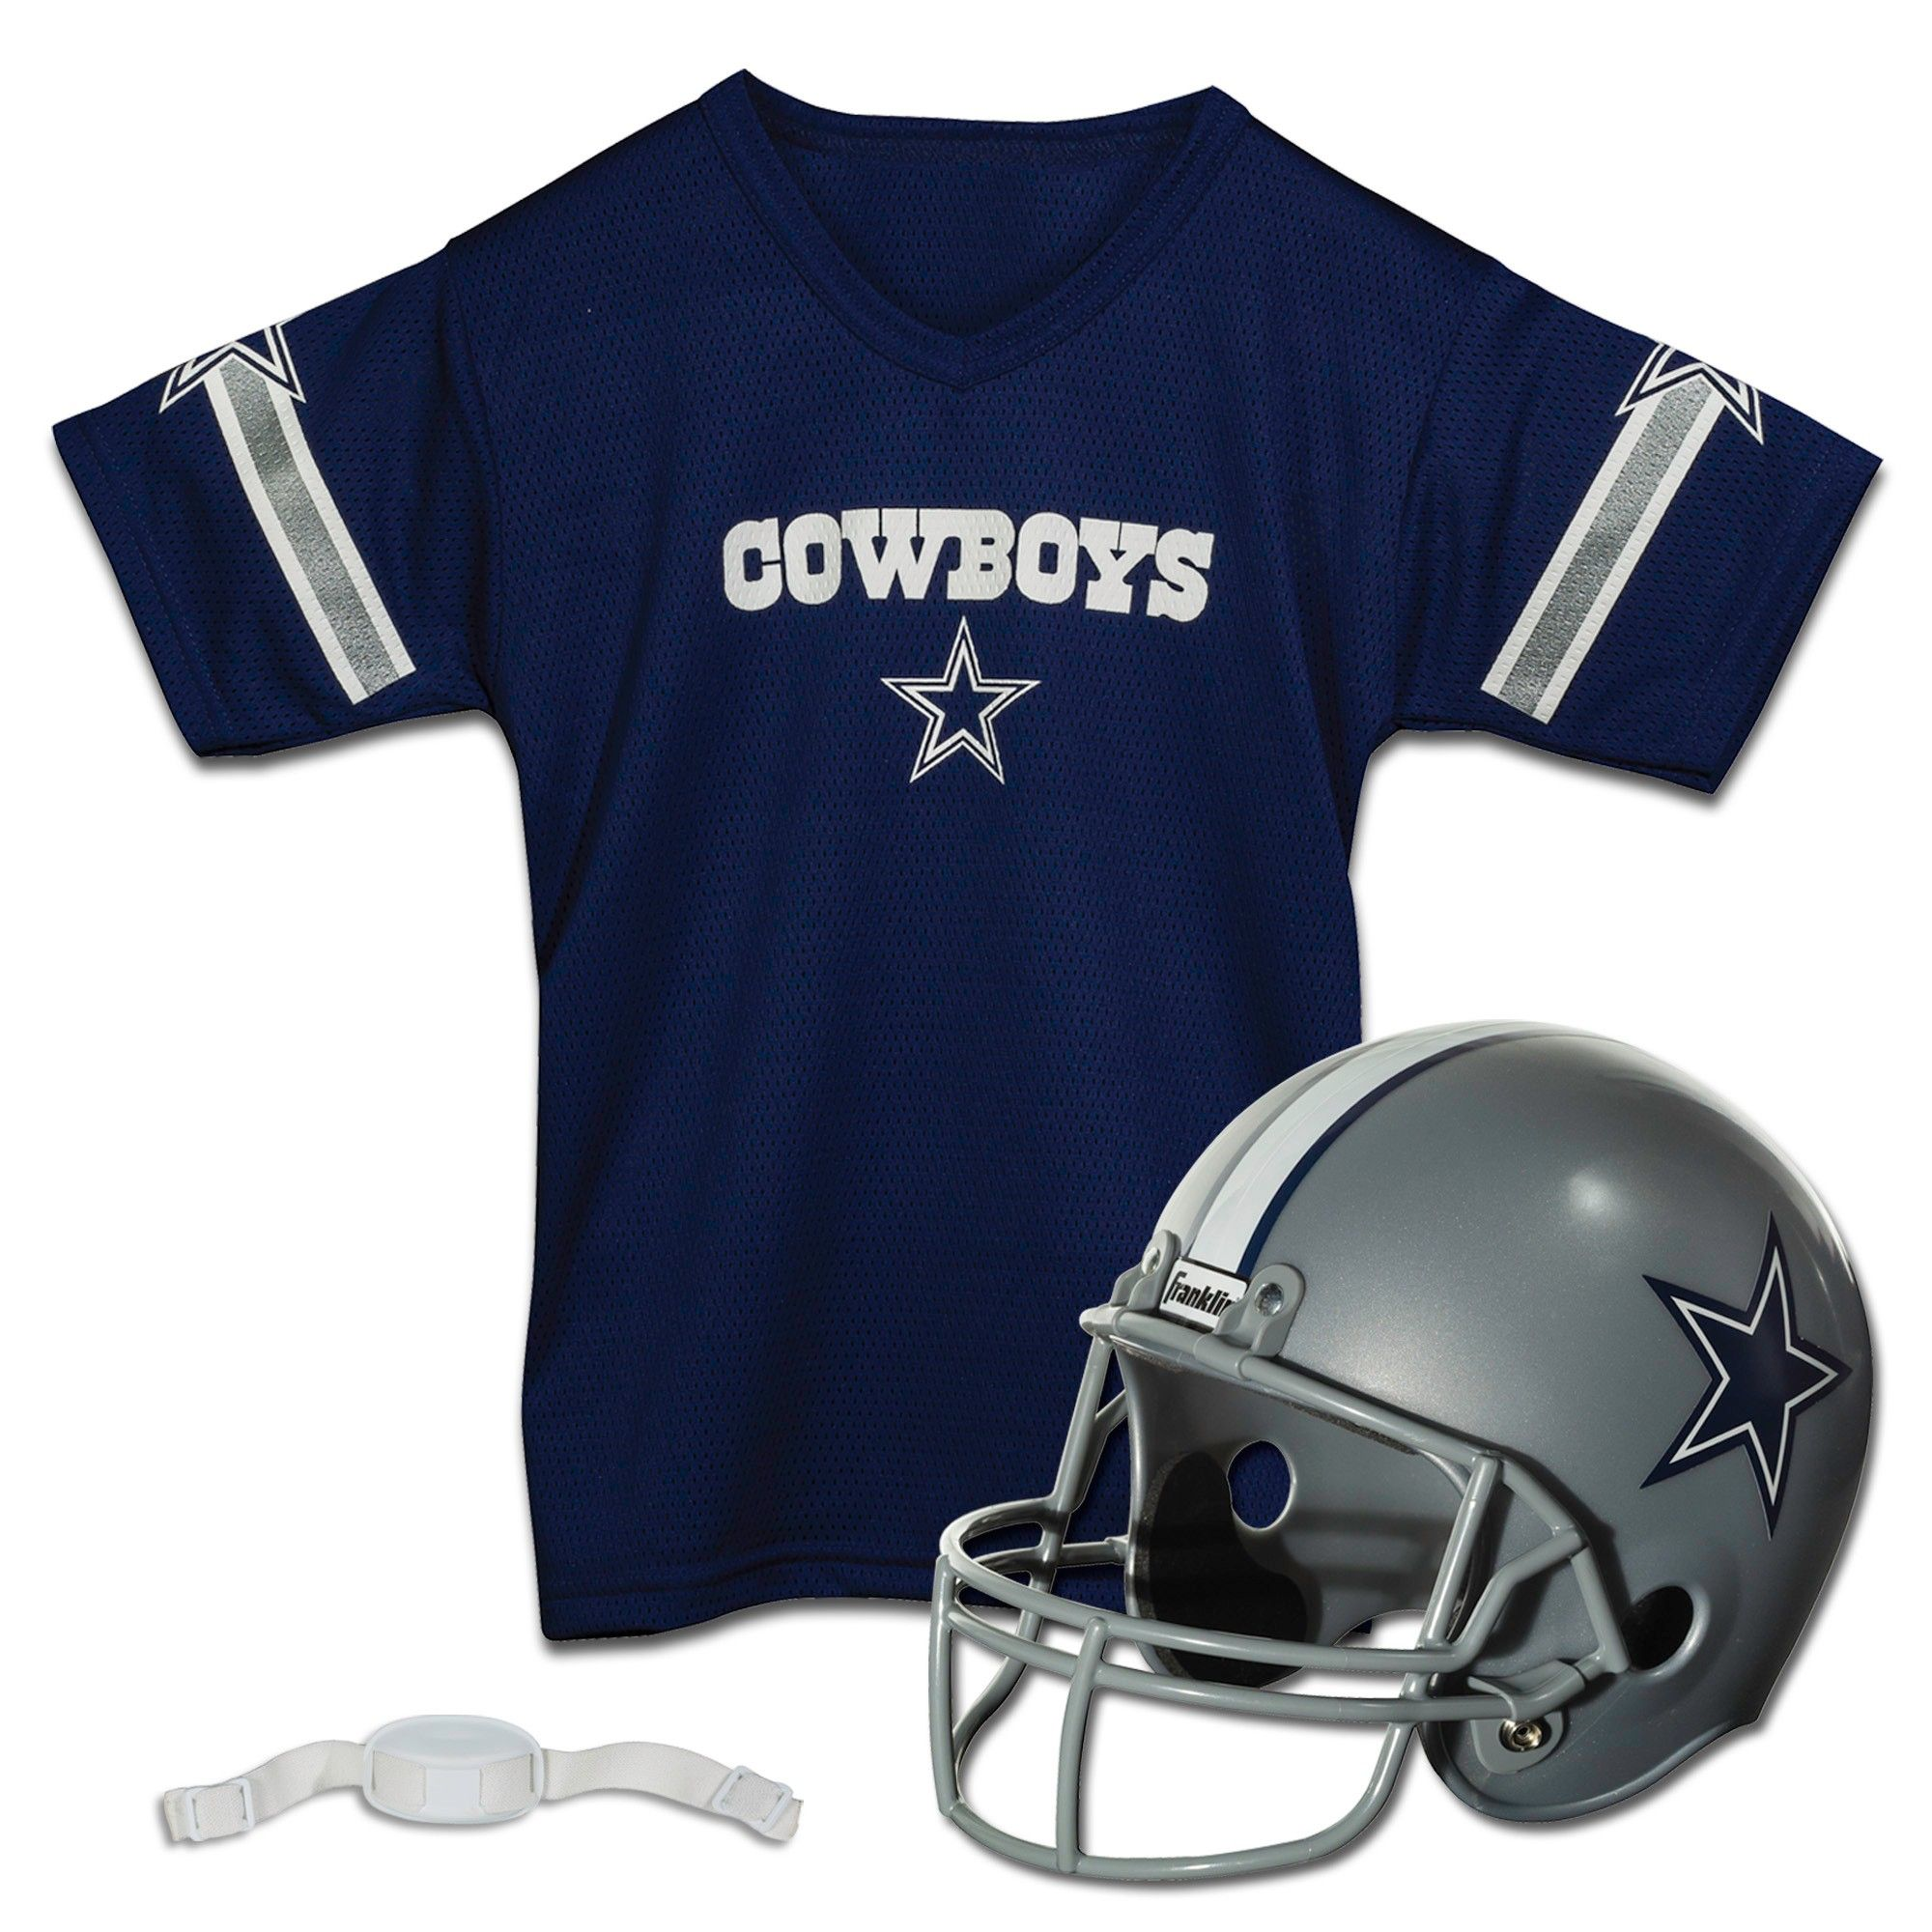 detailed look 05165 323ef NFL Dallas Cowboys Youth Uniform Jersey Set, Kids Unisex ...